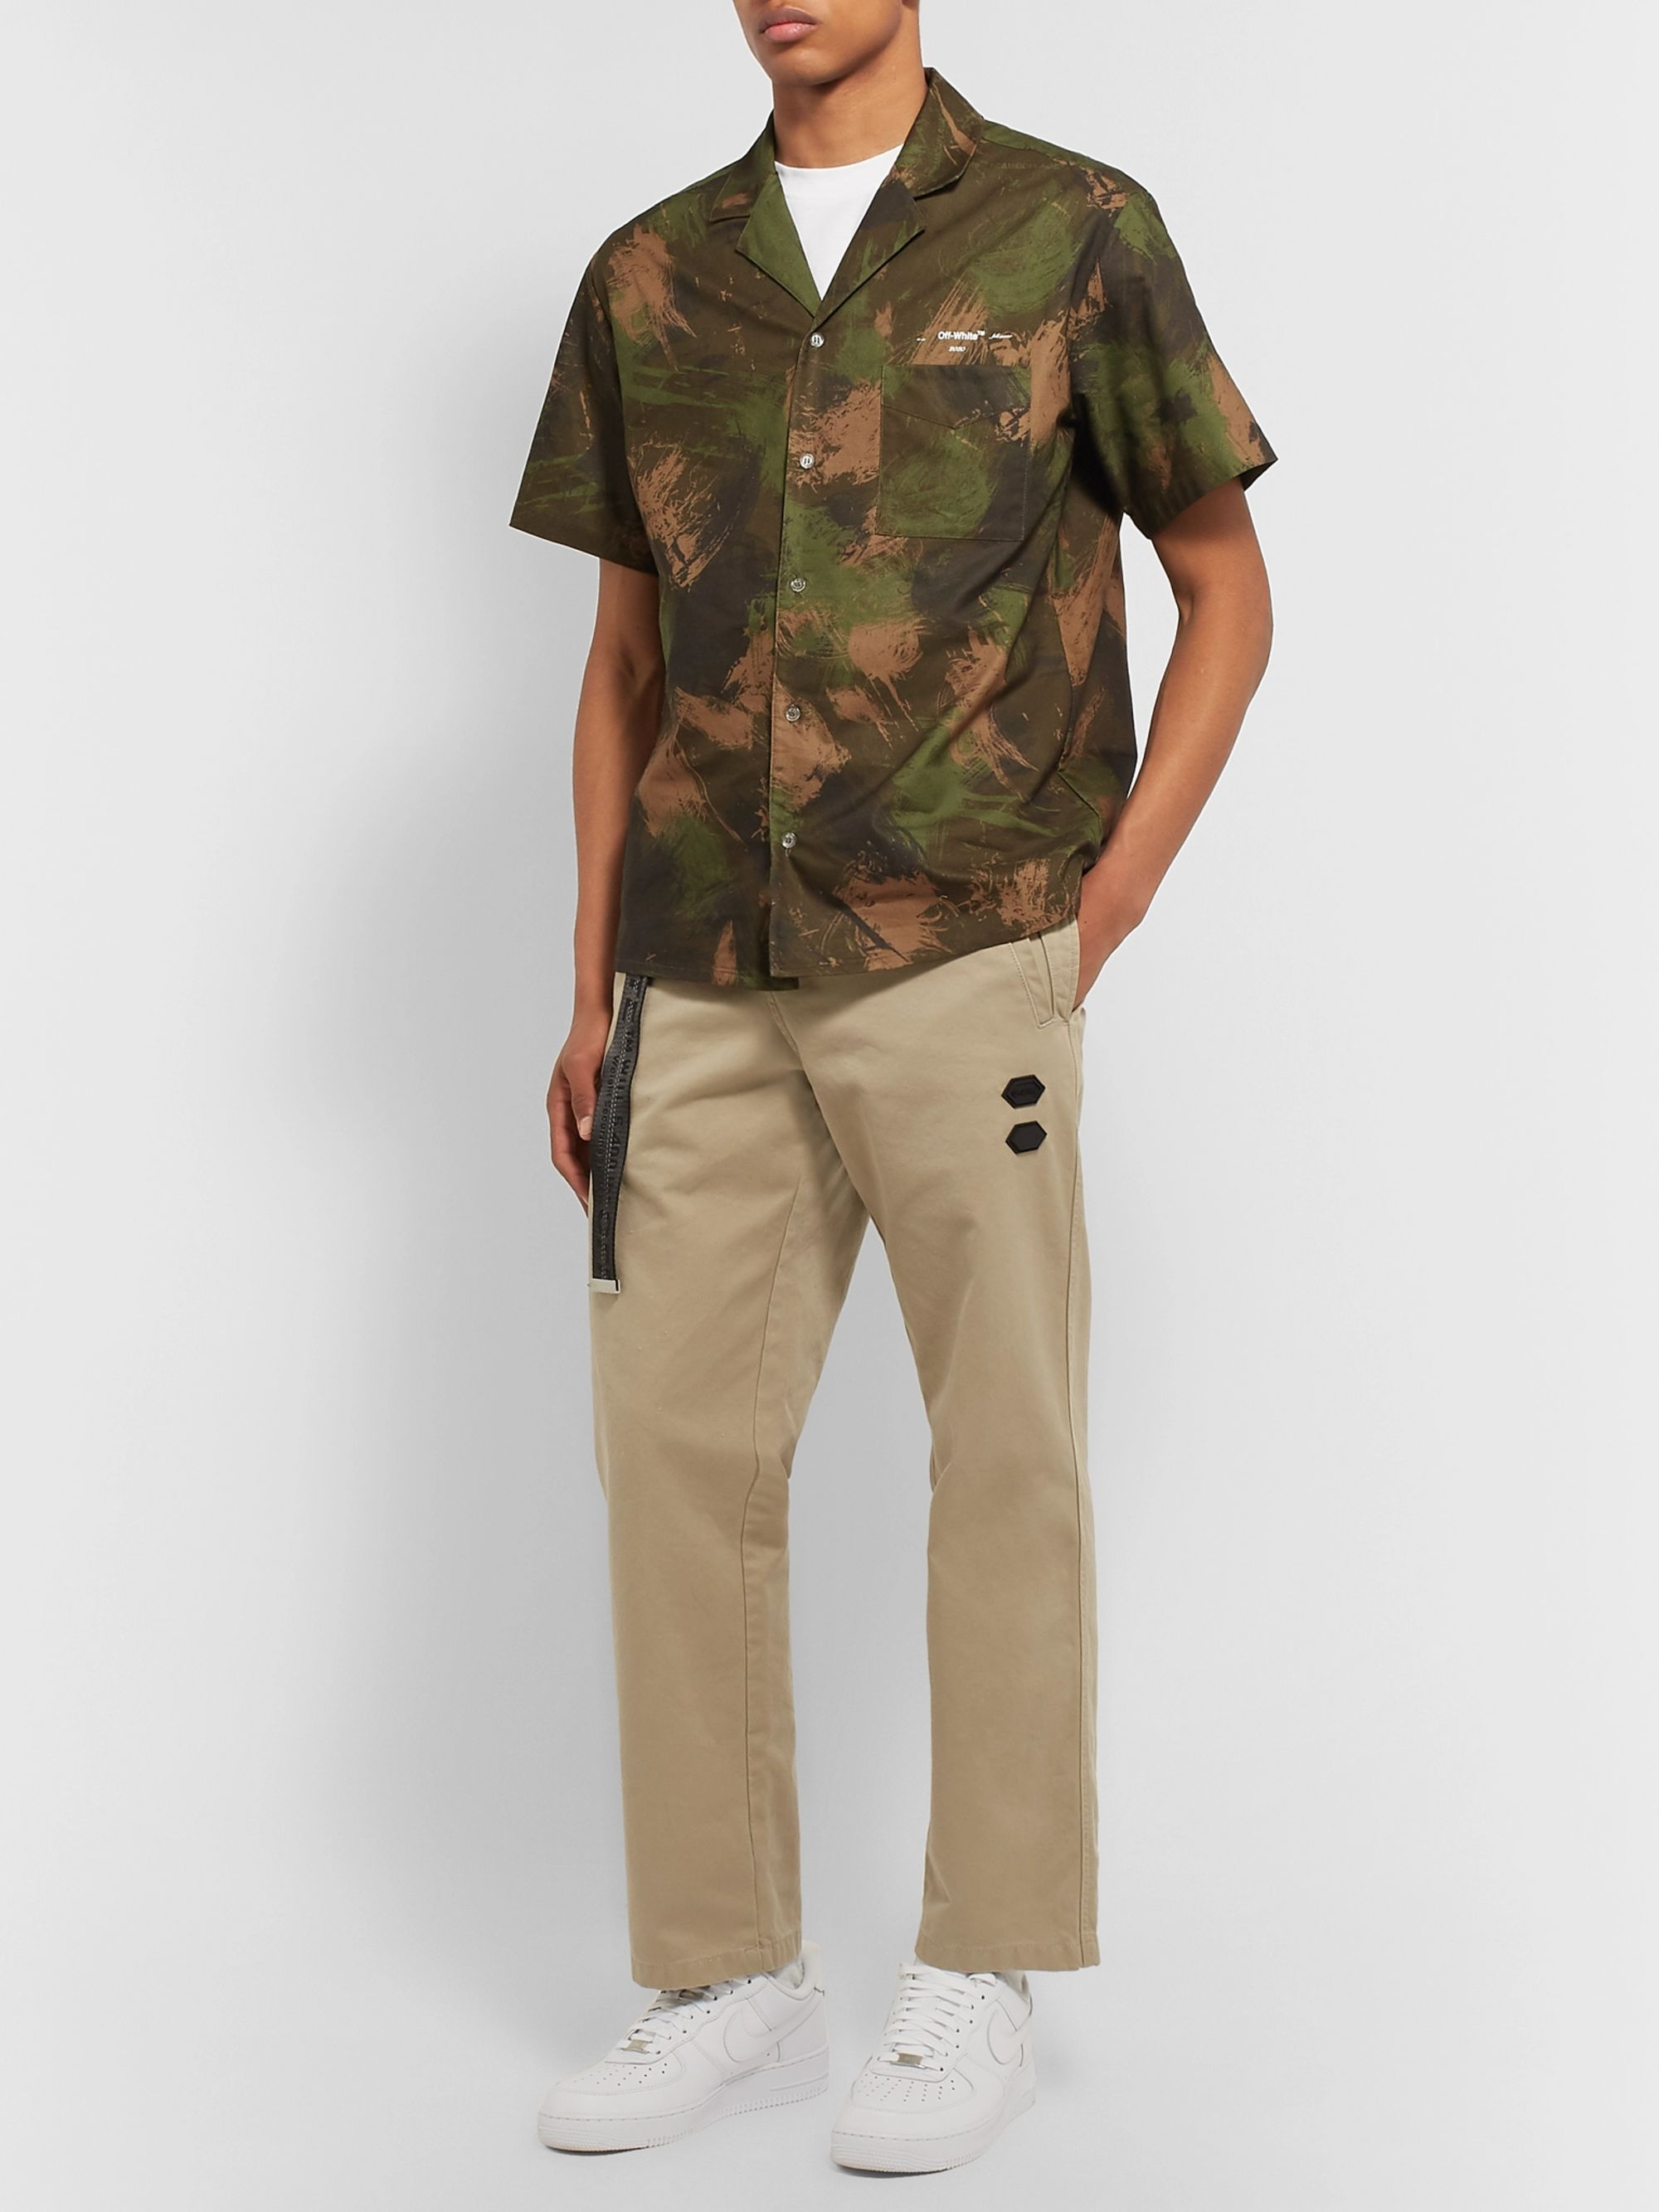 Off-White Camp-Collar Camouflage-Print Cotton Shirt